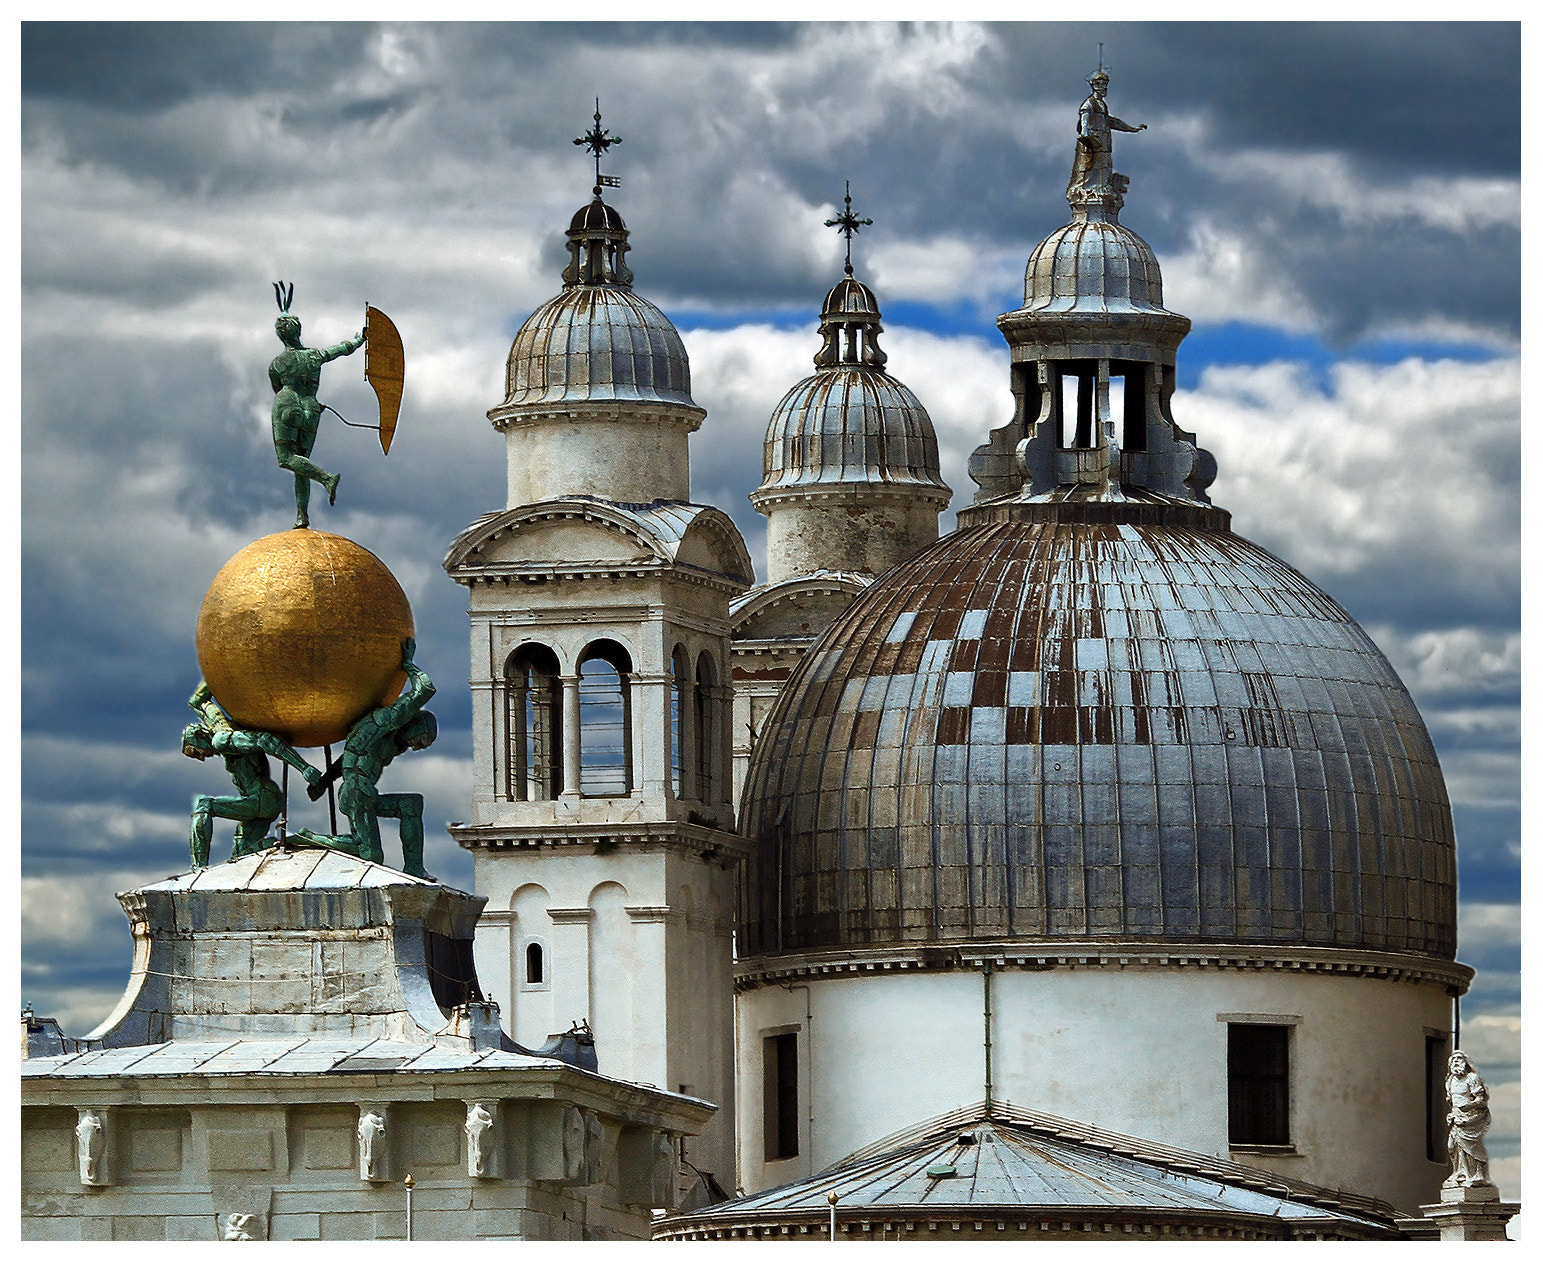 Photograph Domes of Venice by Alexander Sysuev on 500px